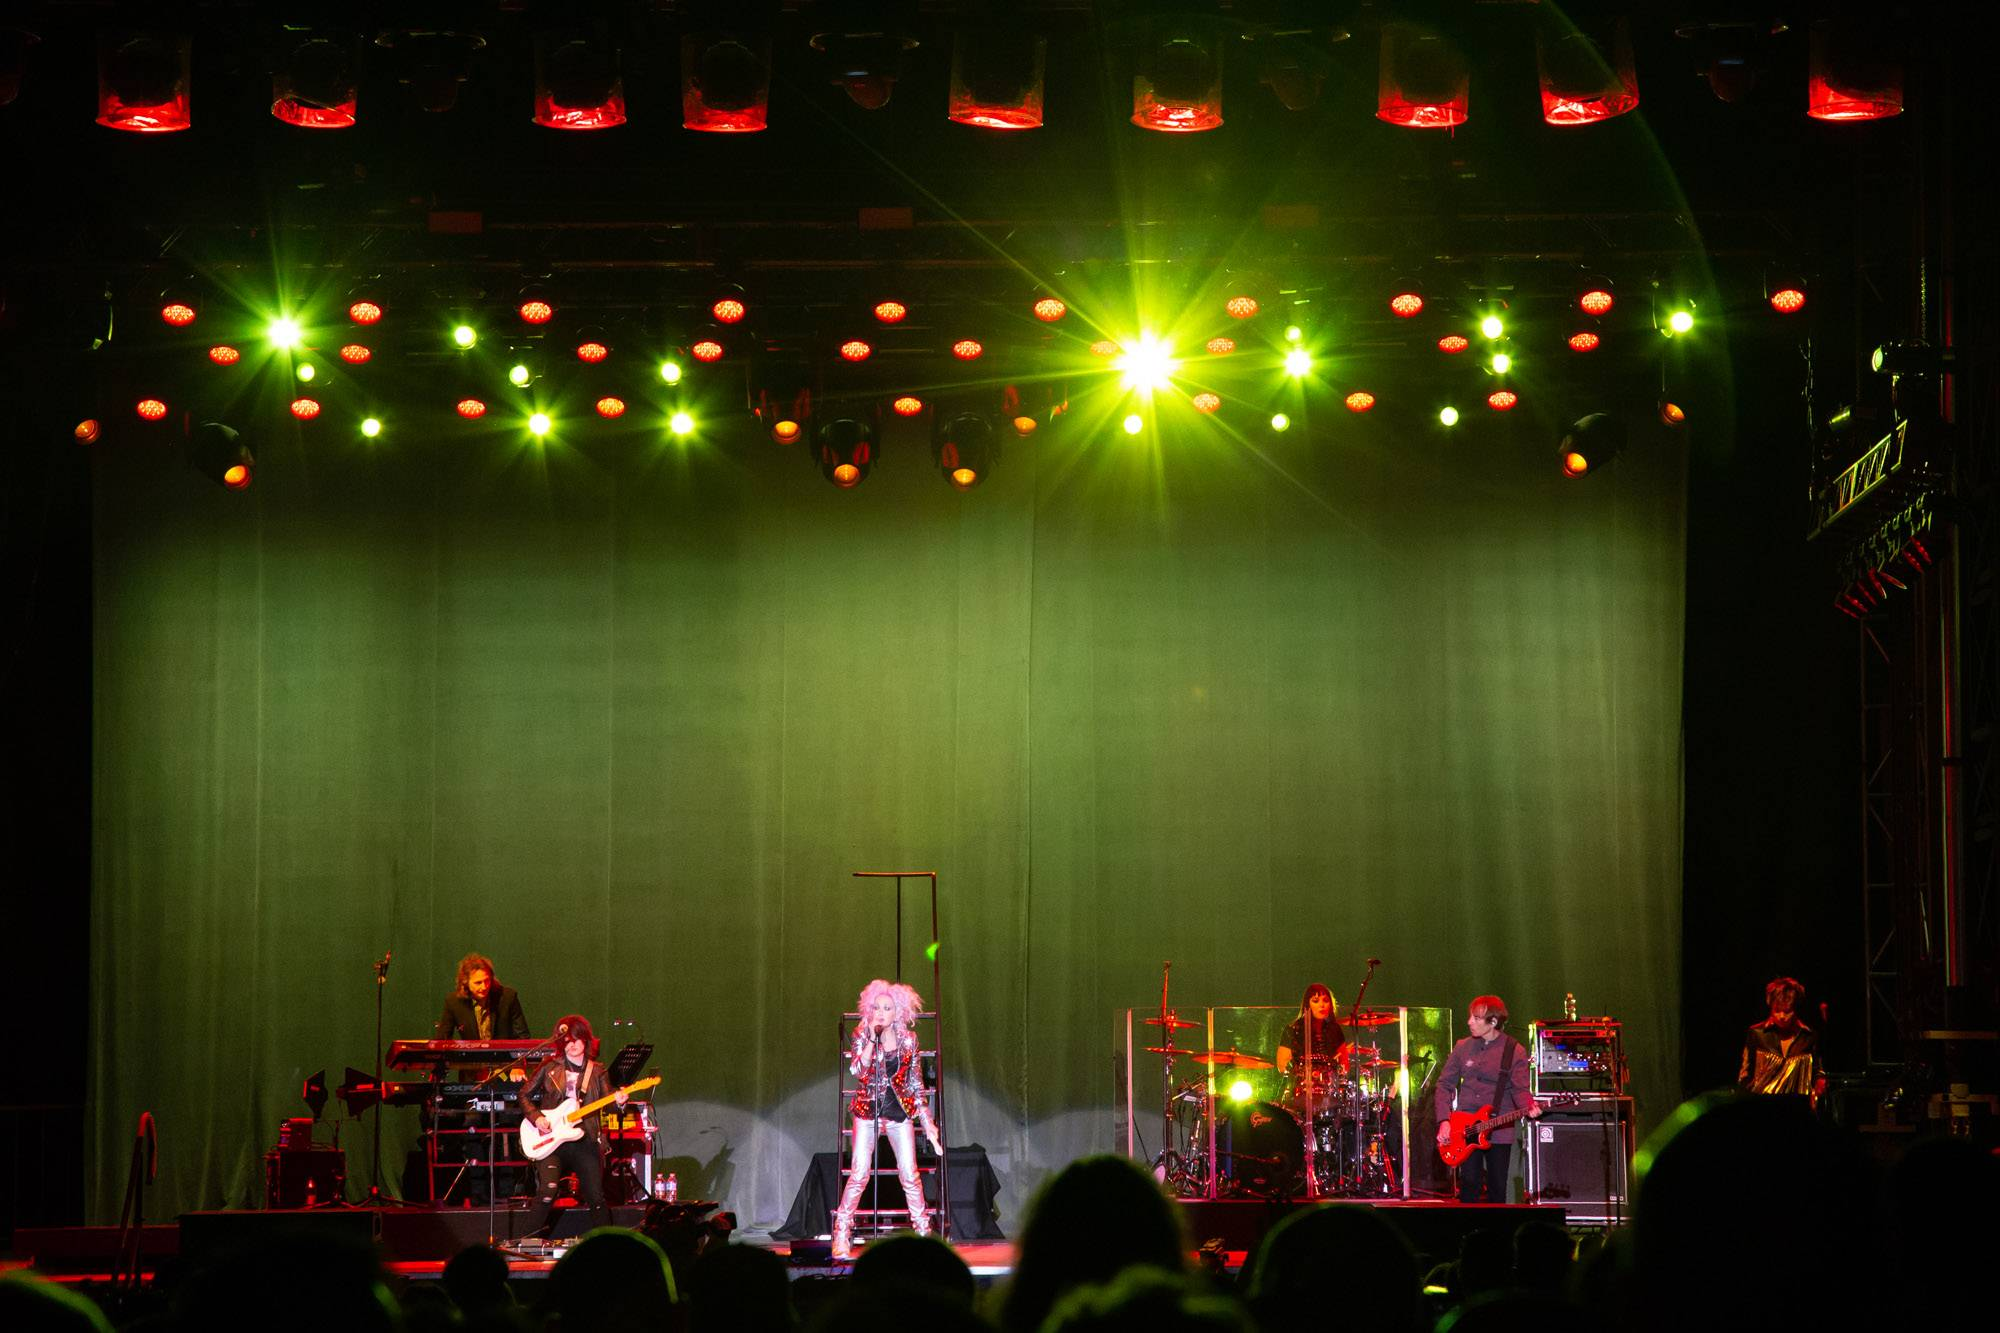 Cyndi Lauper at the PNE Amphitheatre, Vancouver, Sep 3 2018. Kirk Chantraine photo.